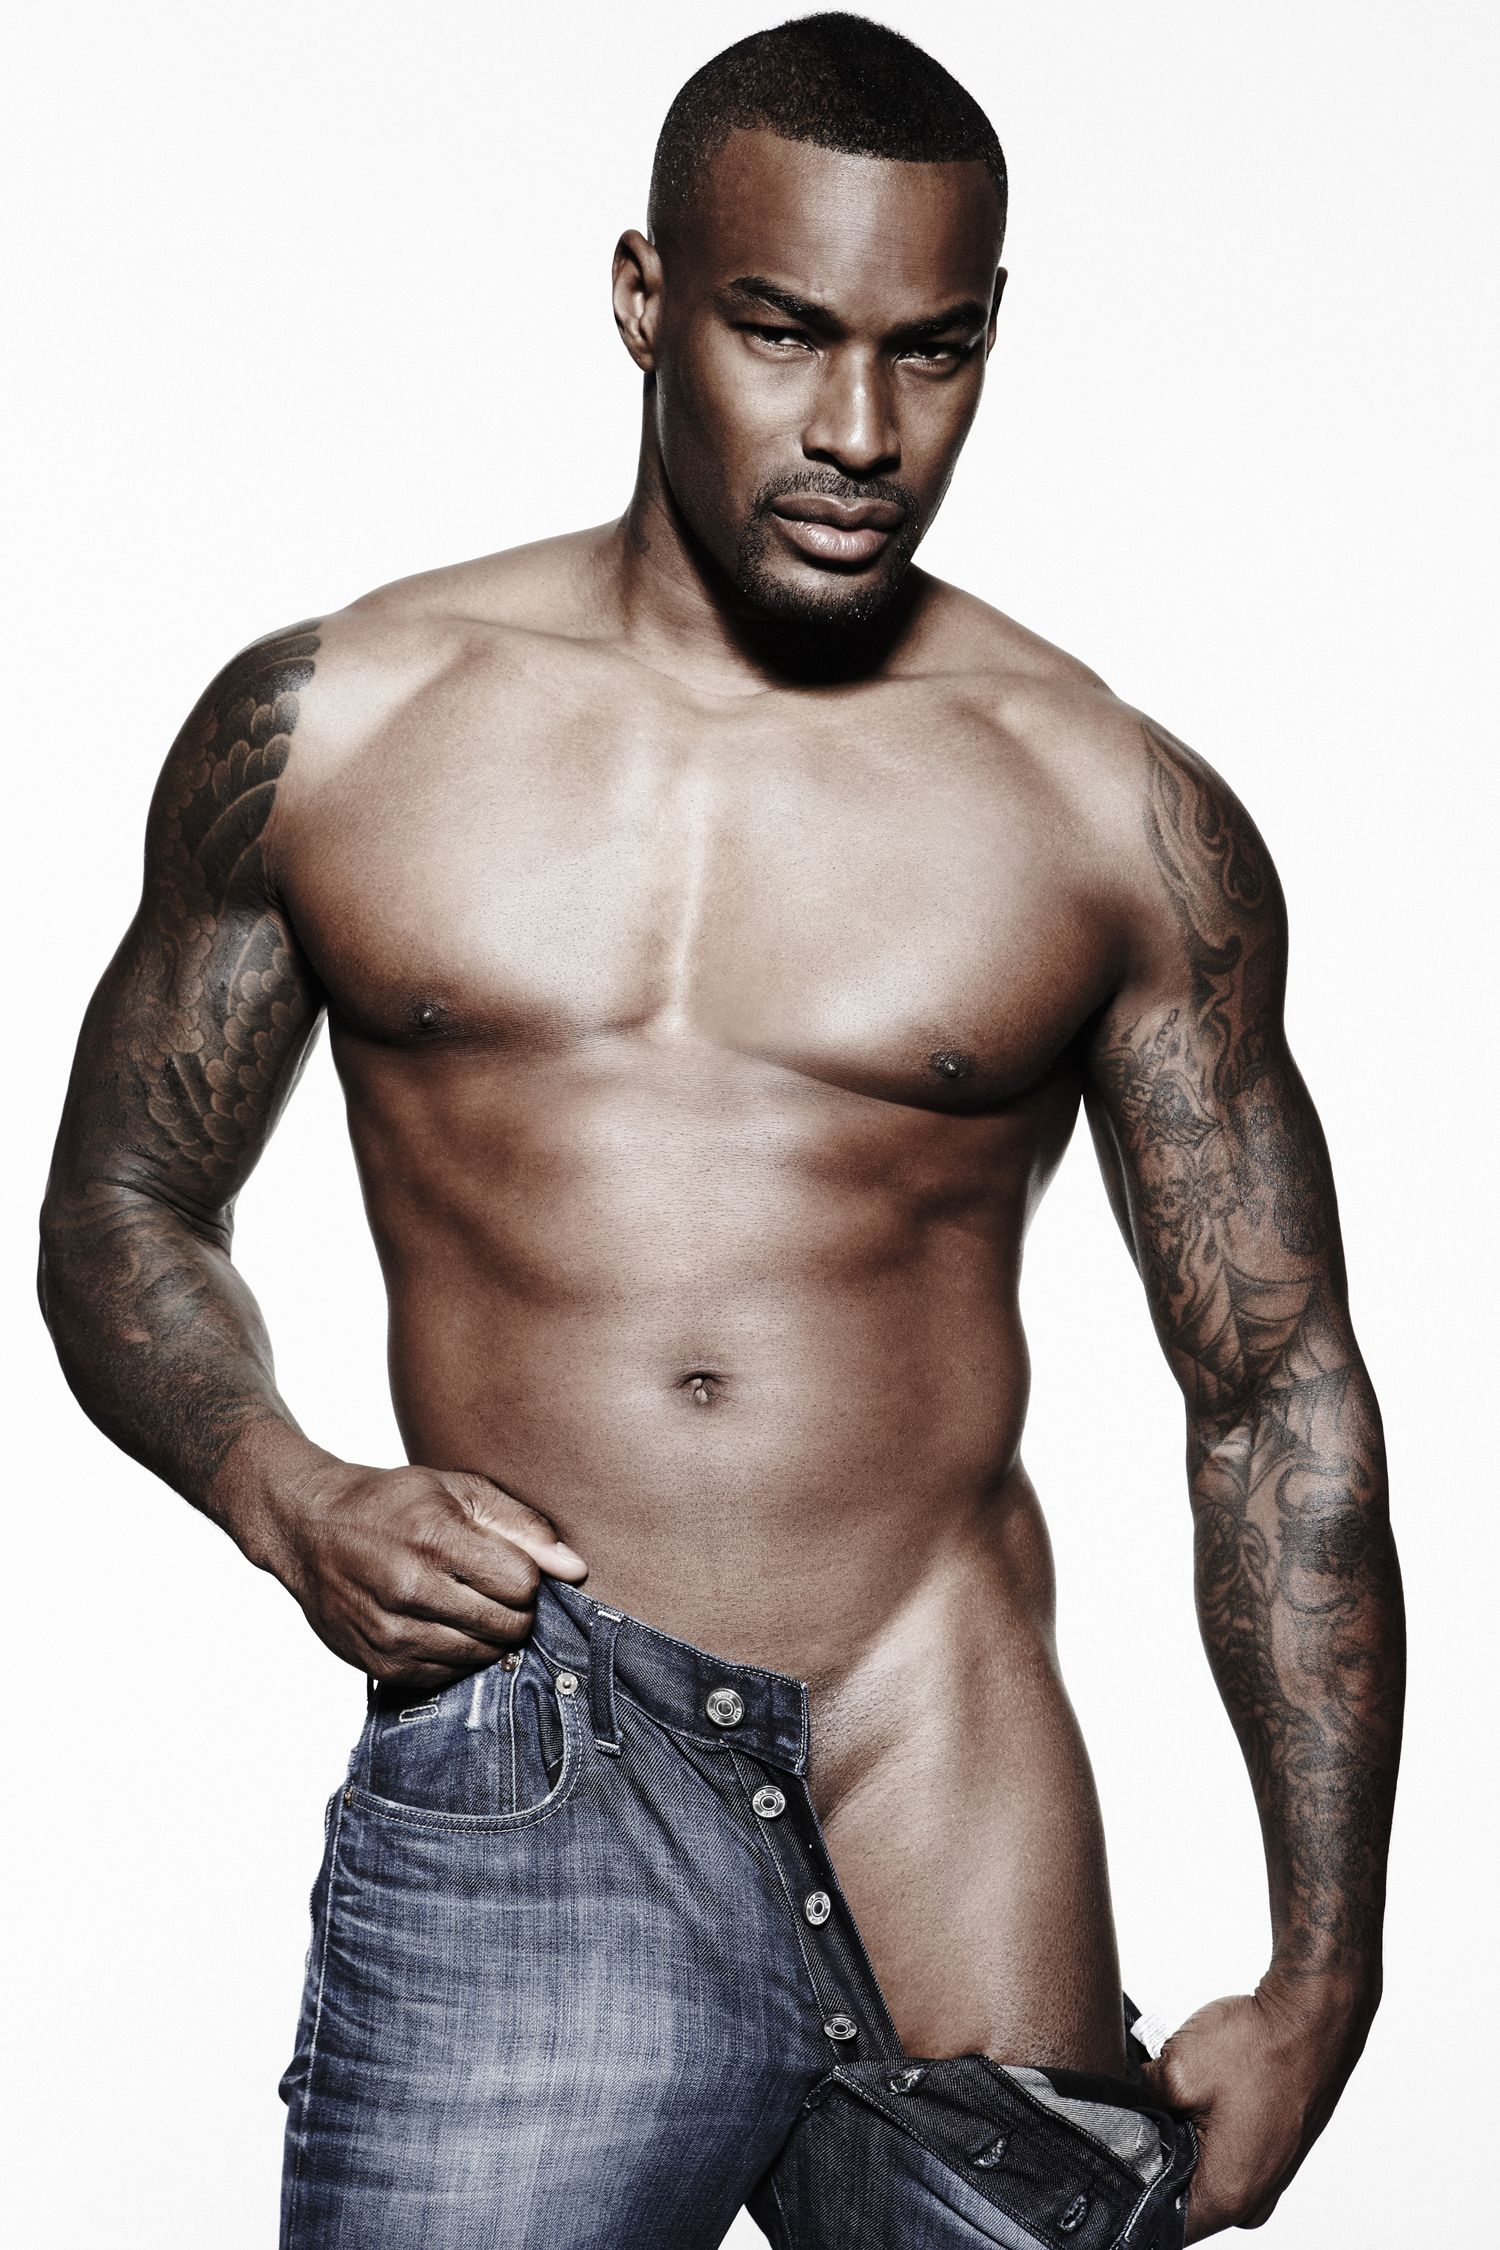 American Gladiators Naked gay spy: tyson beckford naked for charity